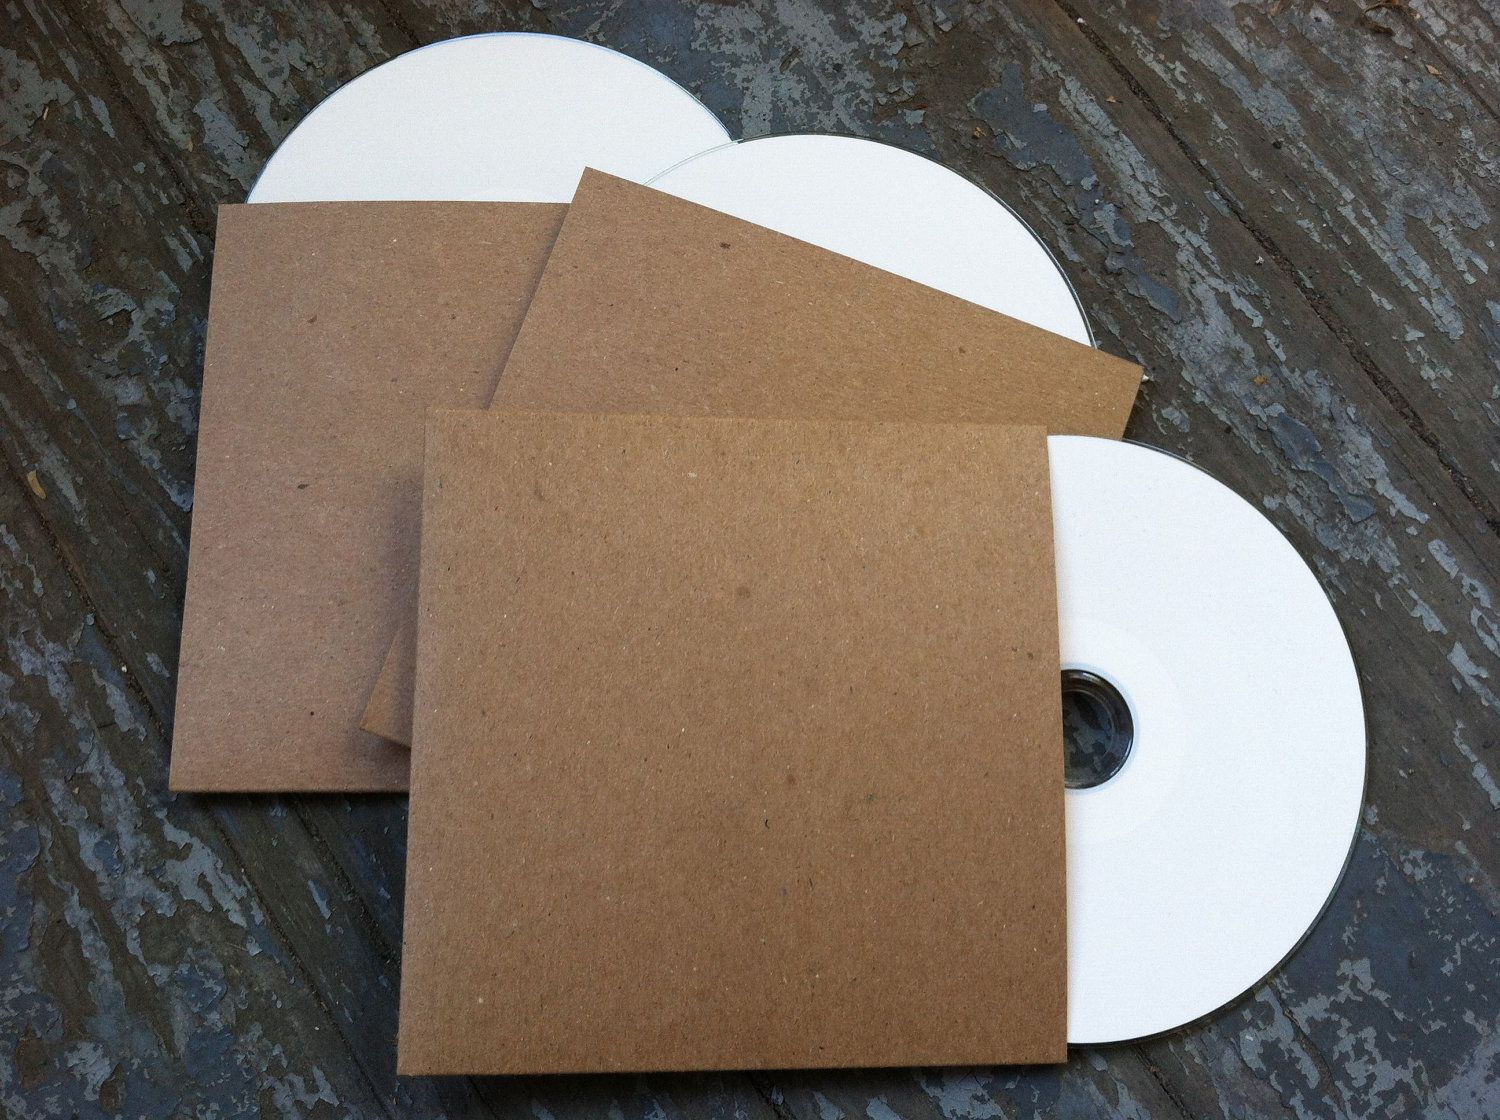 100 Blank Cd Sleeves Cases Packaging For Bands Photographers Wedding